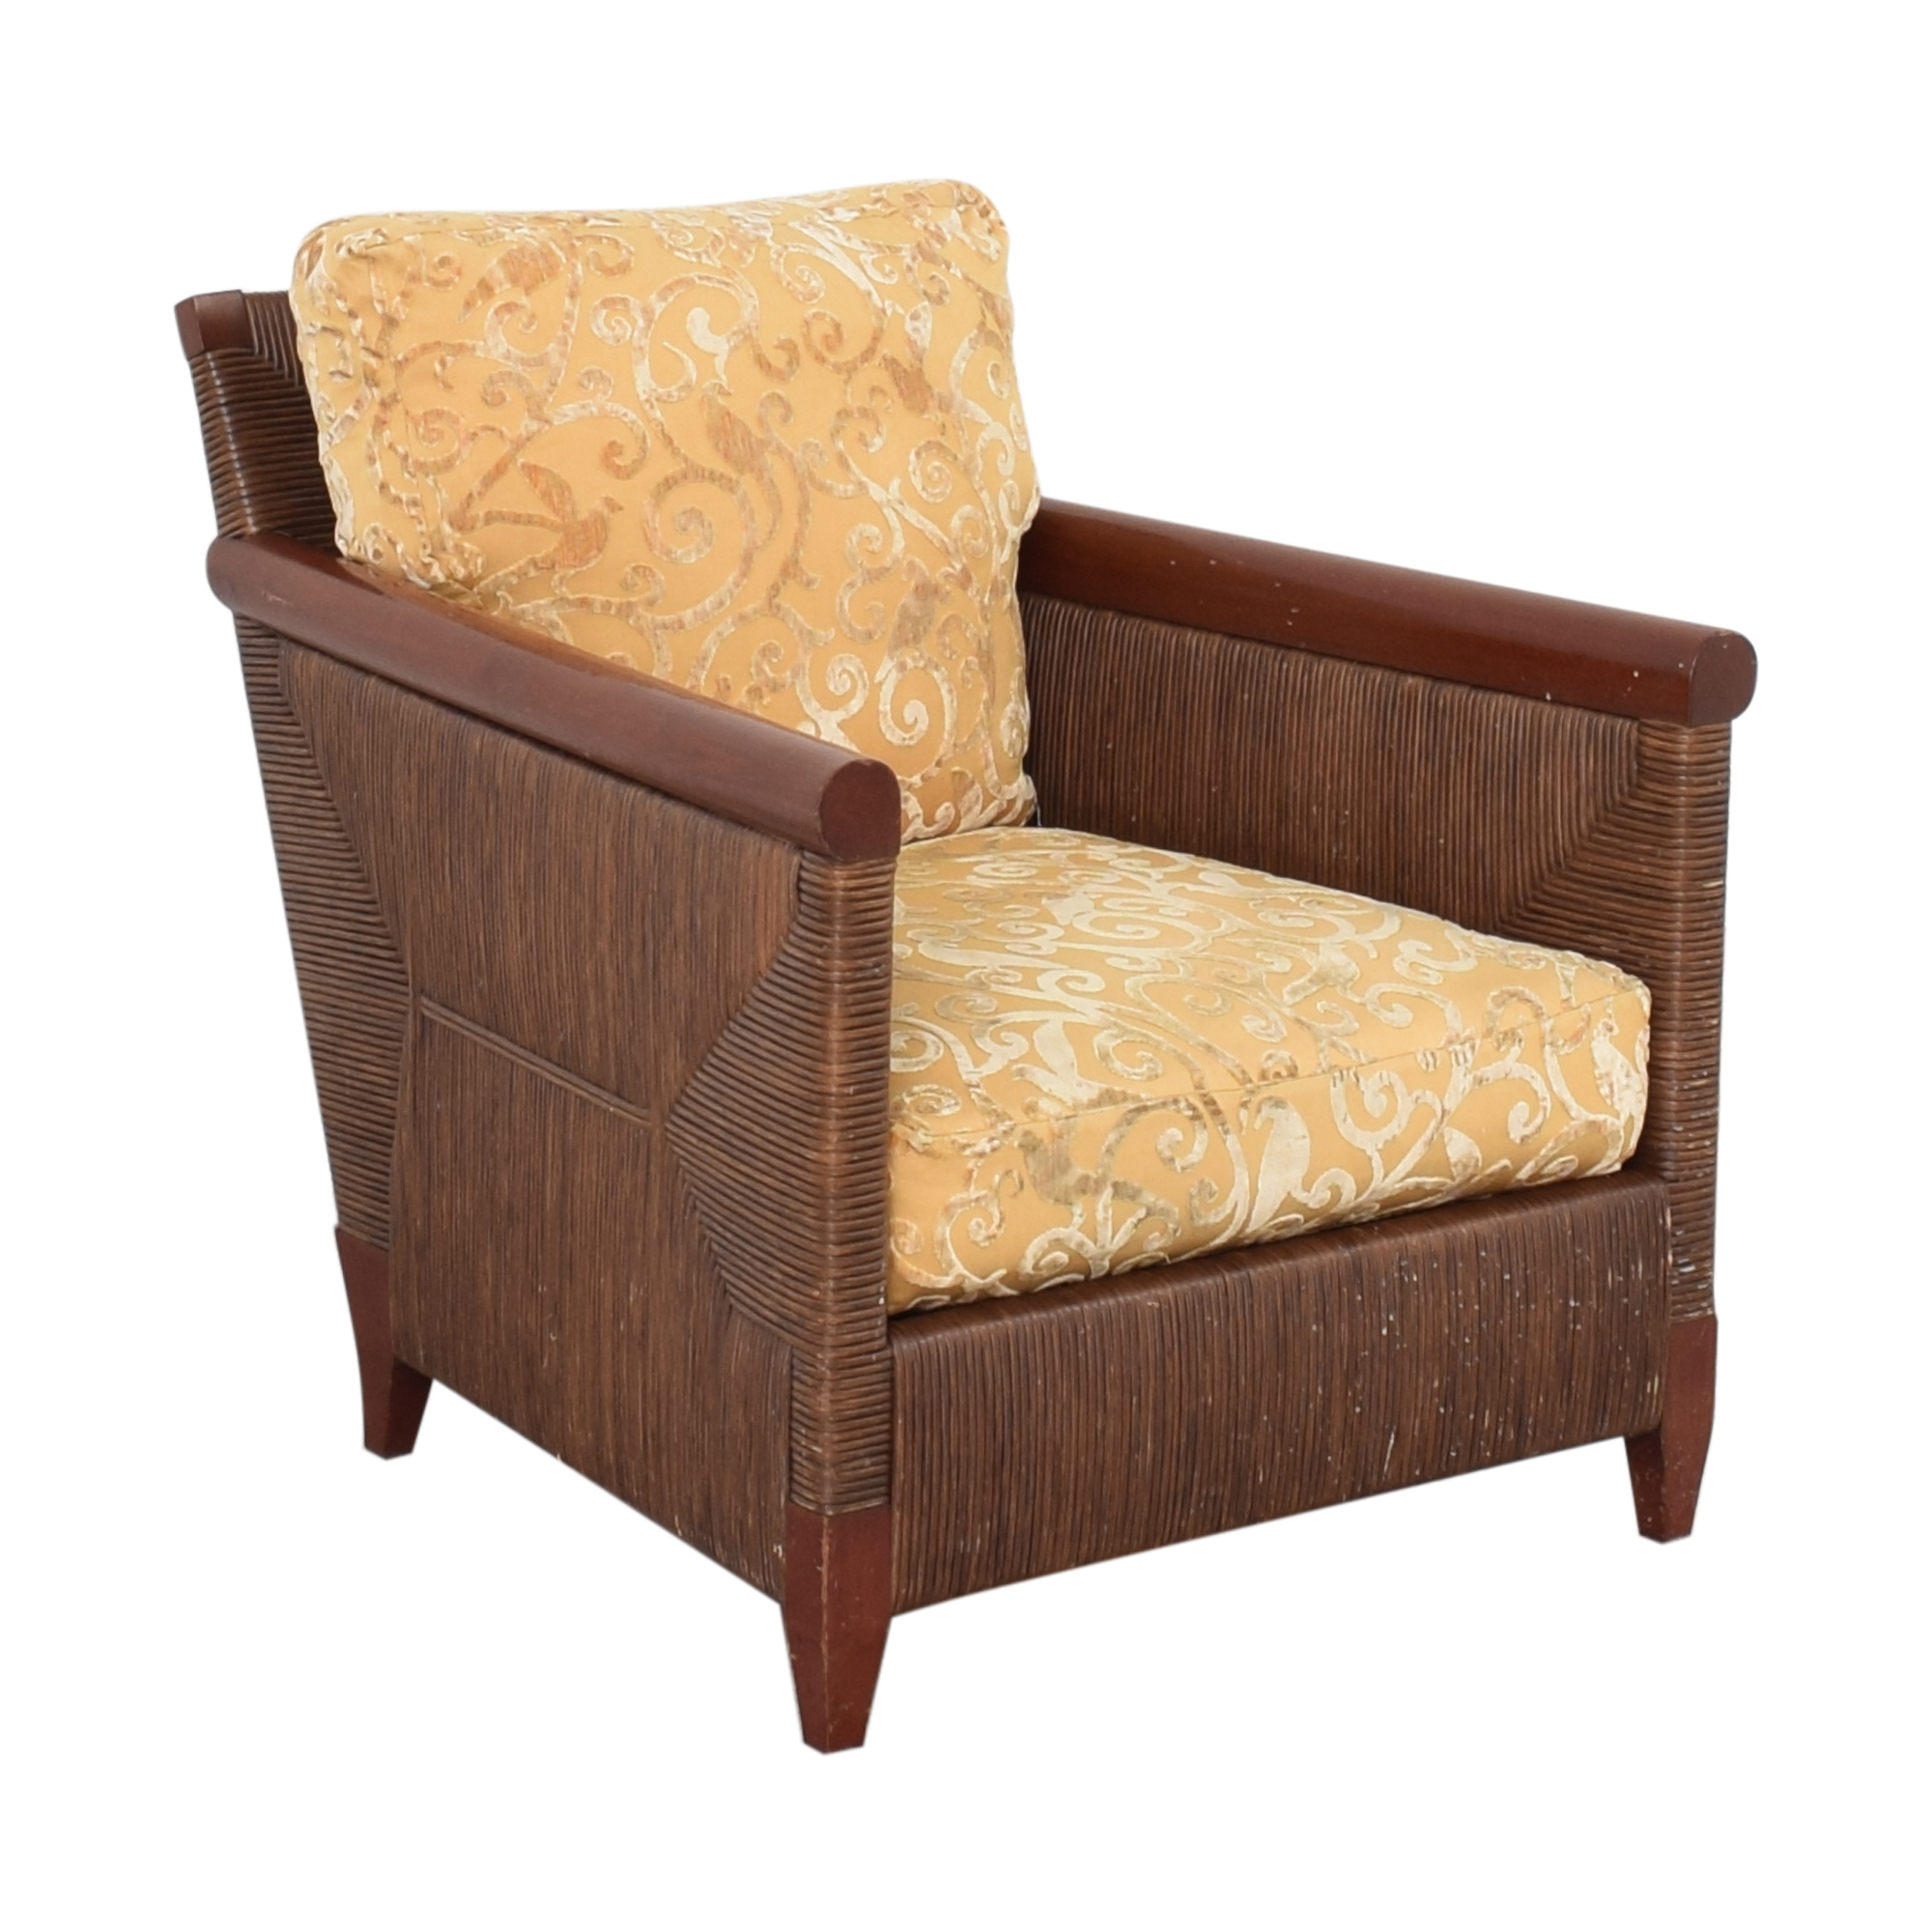 buy Donghia by John Hutton Mahogany and Wicker Lounger Donghia Chairs